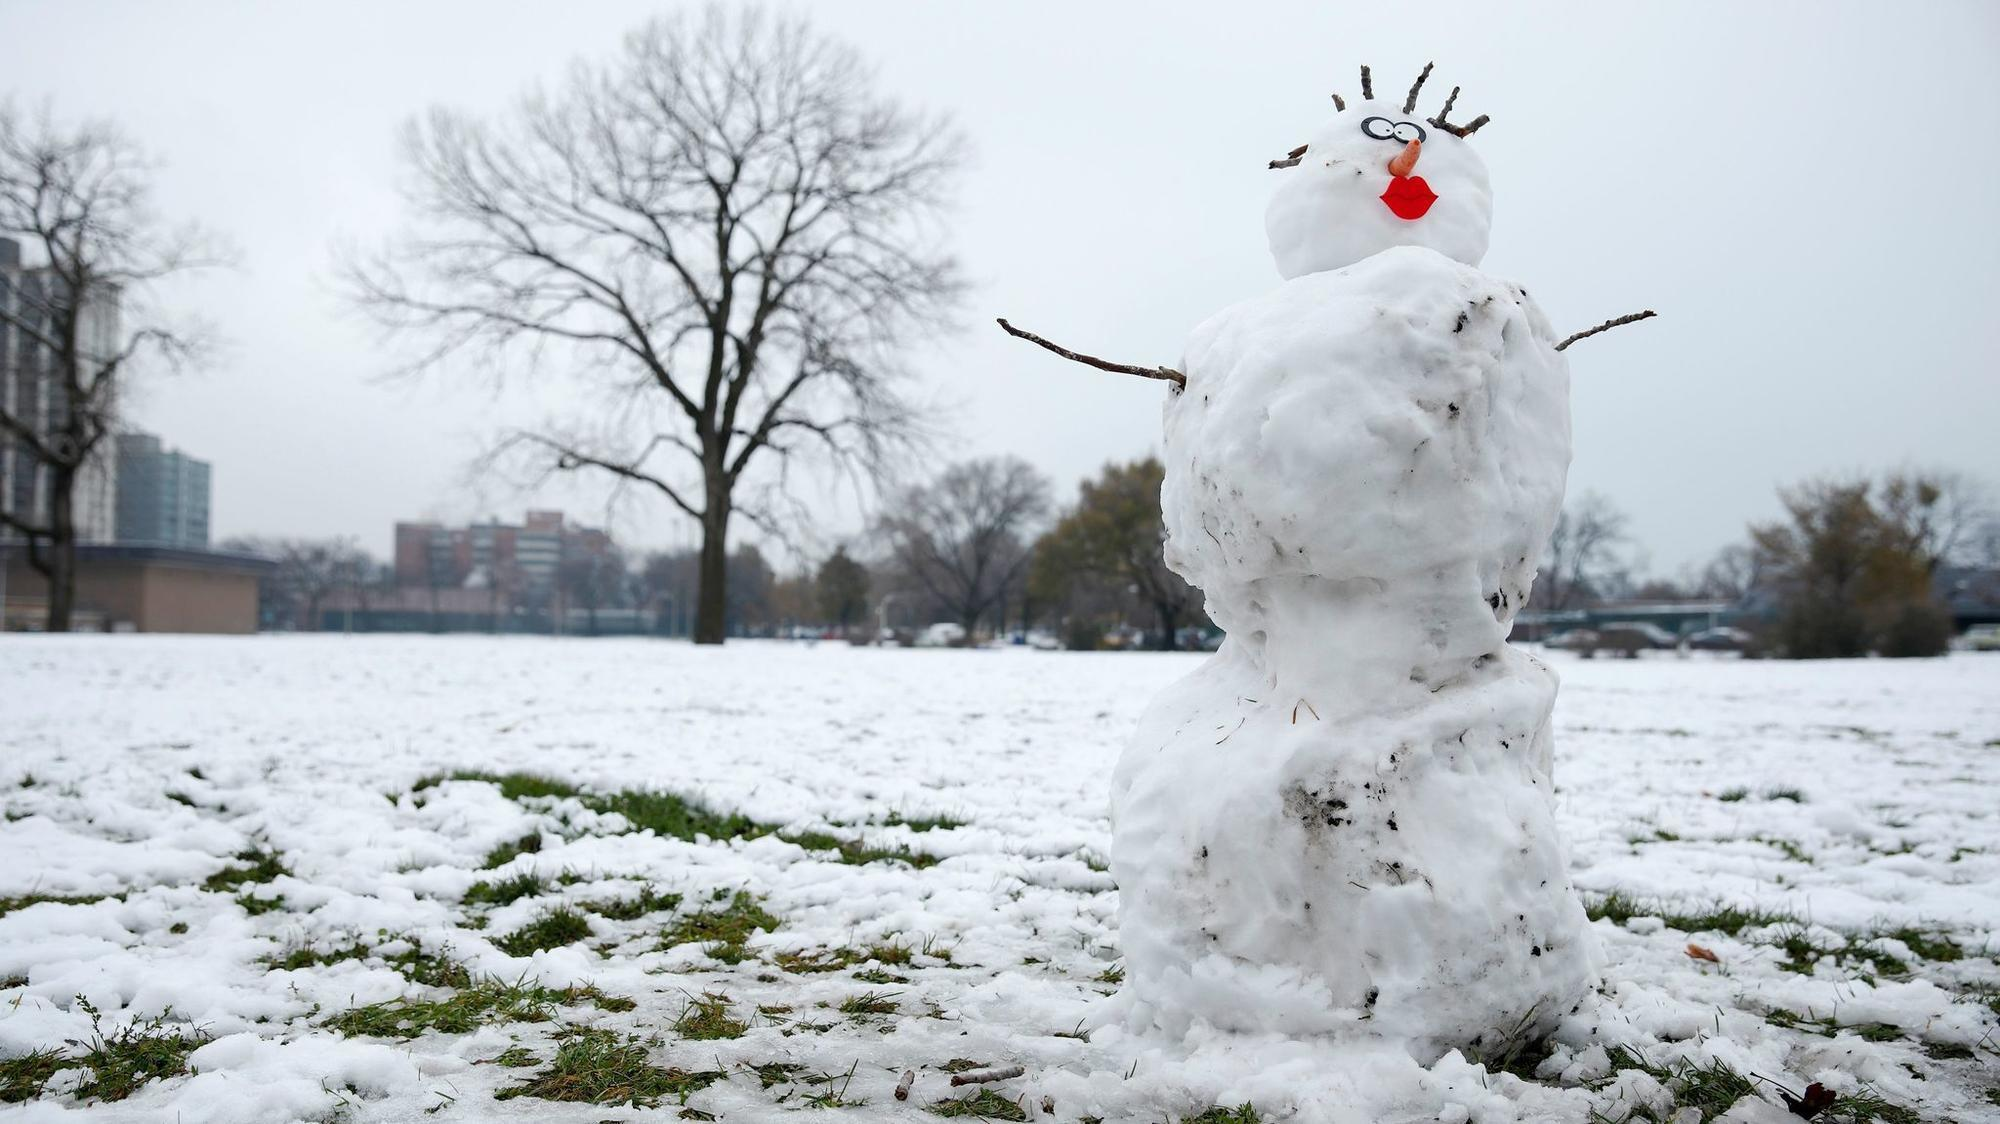 Embrace Or Escape From The Cold With These Winter Activities In - 17 cars turned into art thanks to frosty winter weather